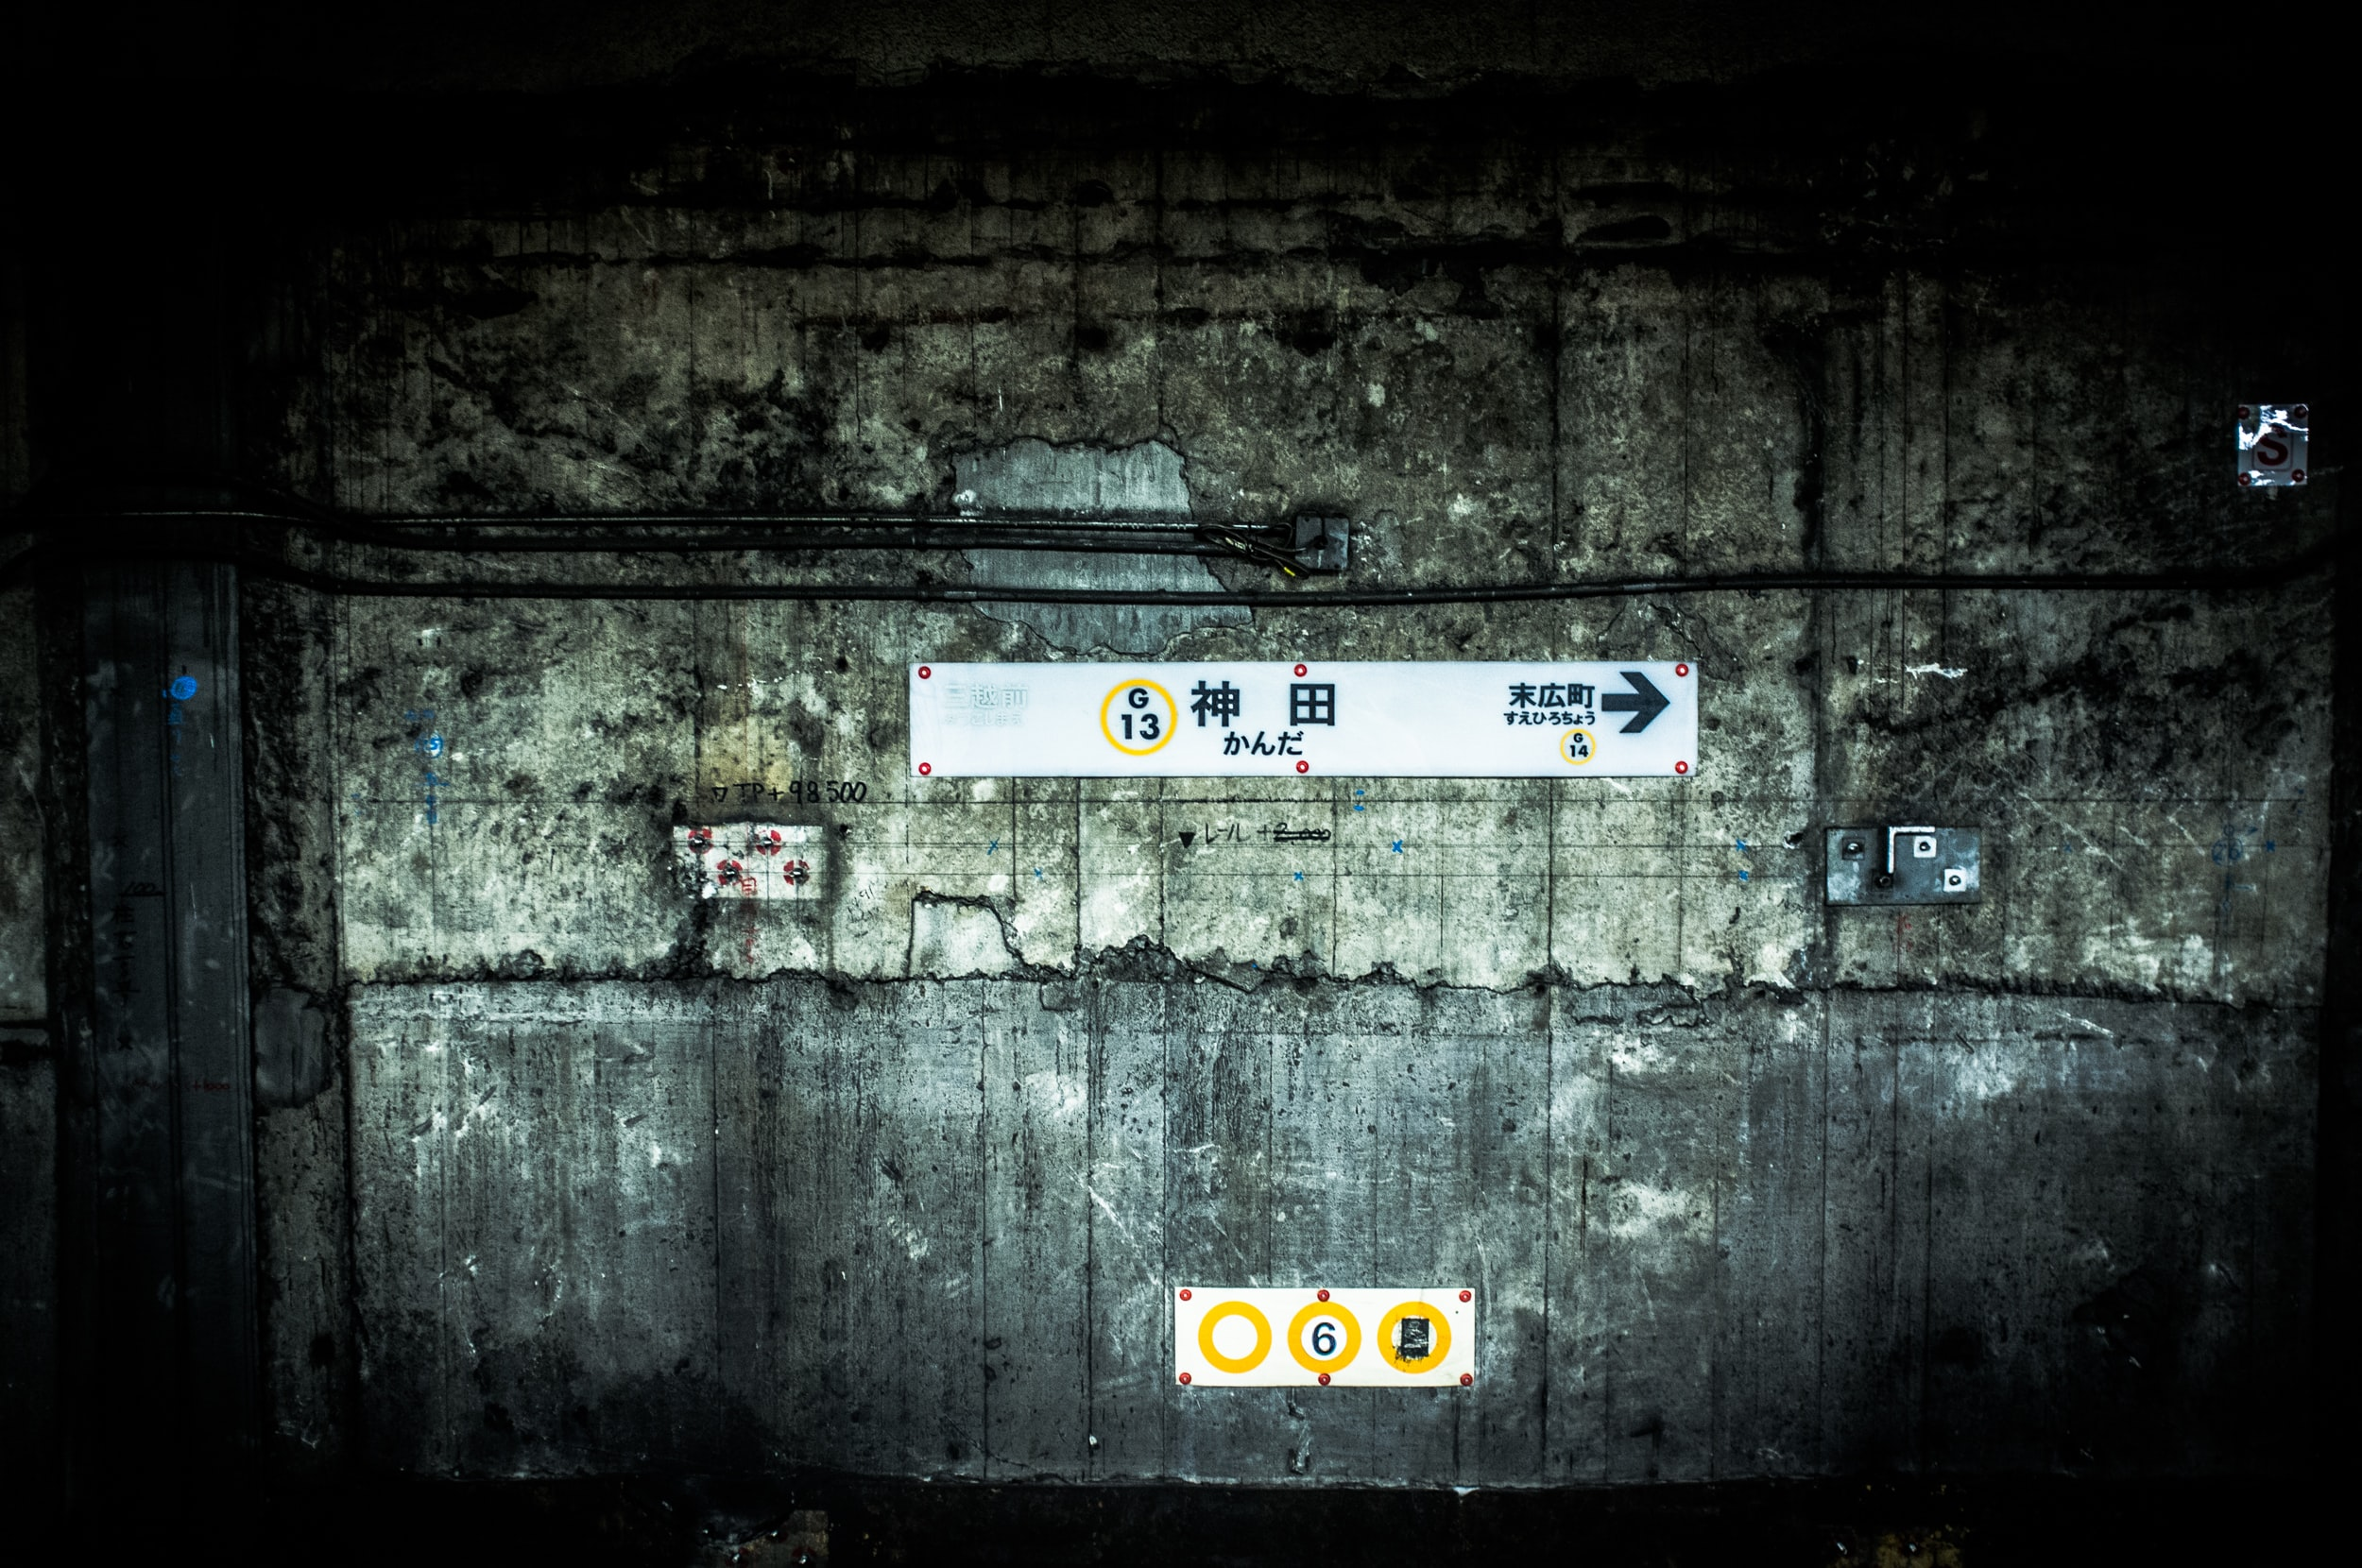 White signs showing the direction on a worn-out wall at a railway station